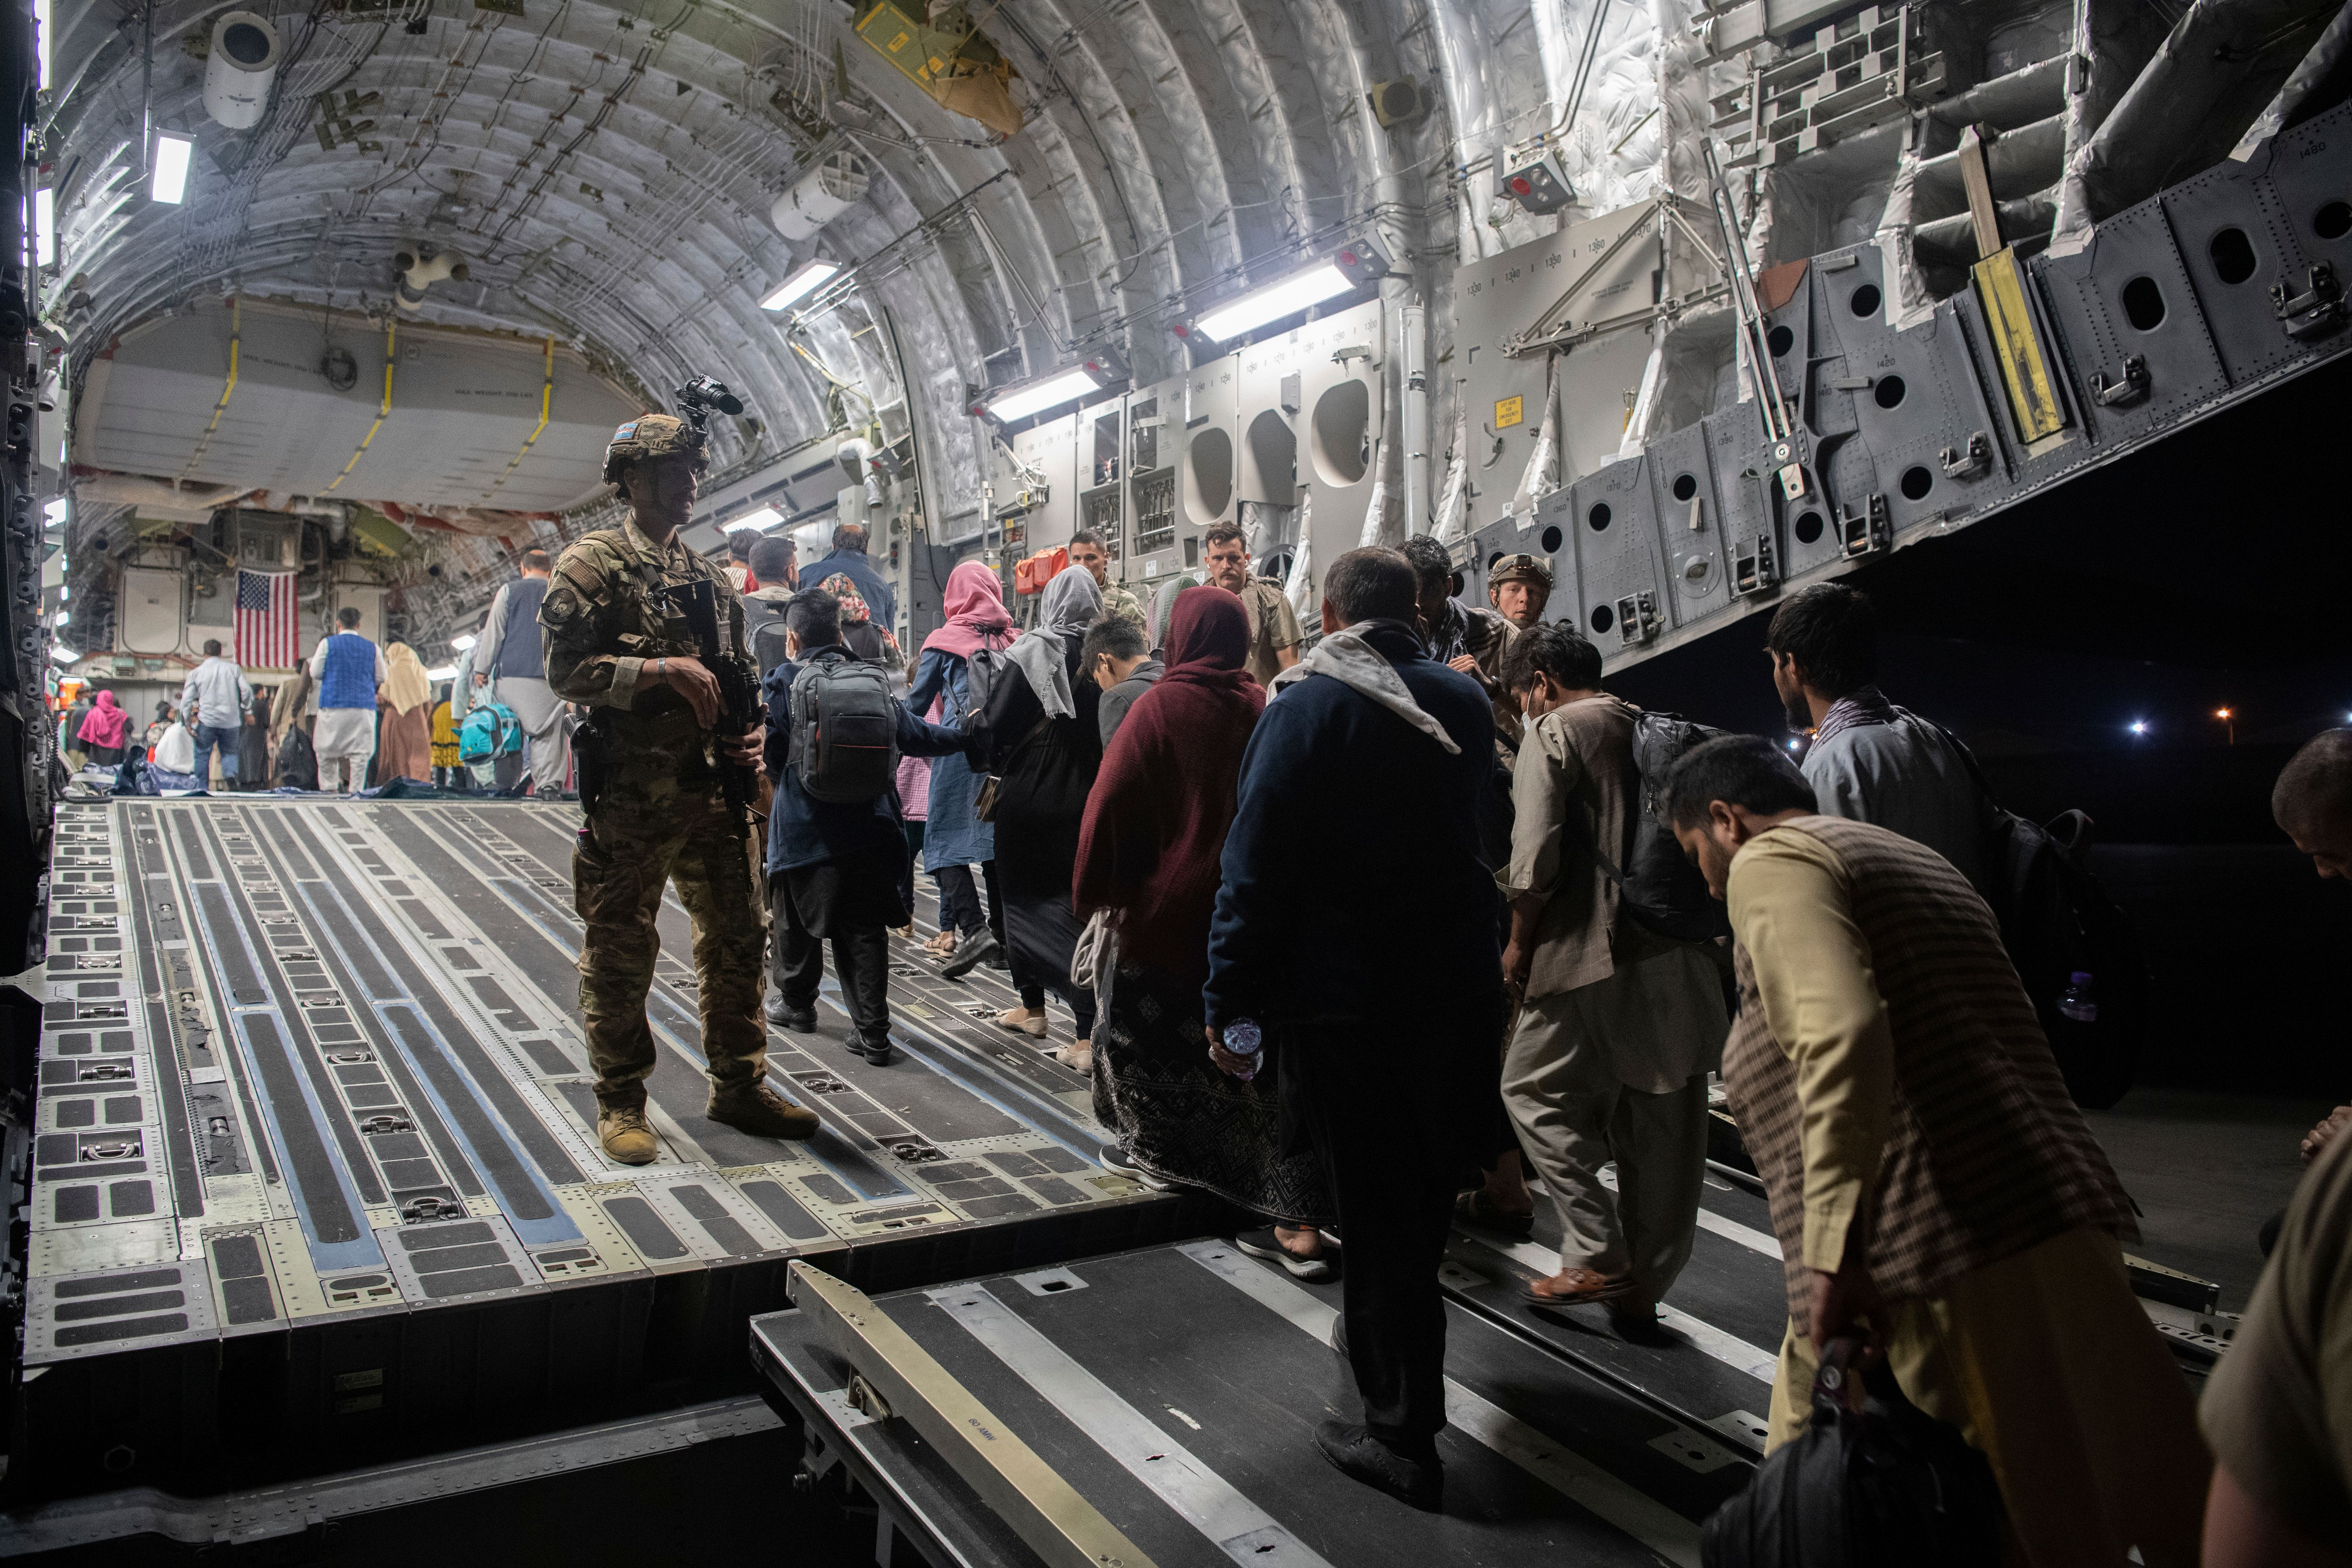 In this Aug. 22, 2021, photo provided by the U.S. Air Force, Afghan passengers board a U.S. Air Force C-17 Globemaster III du